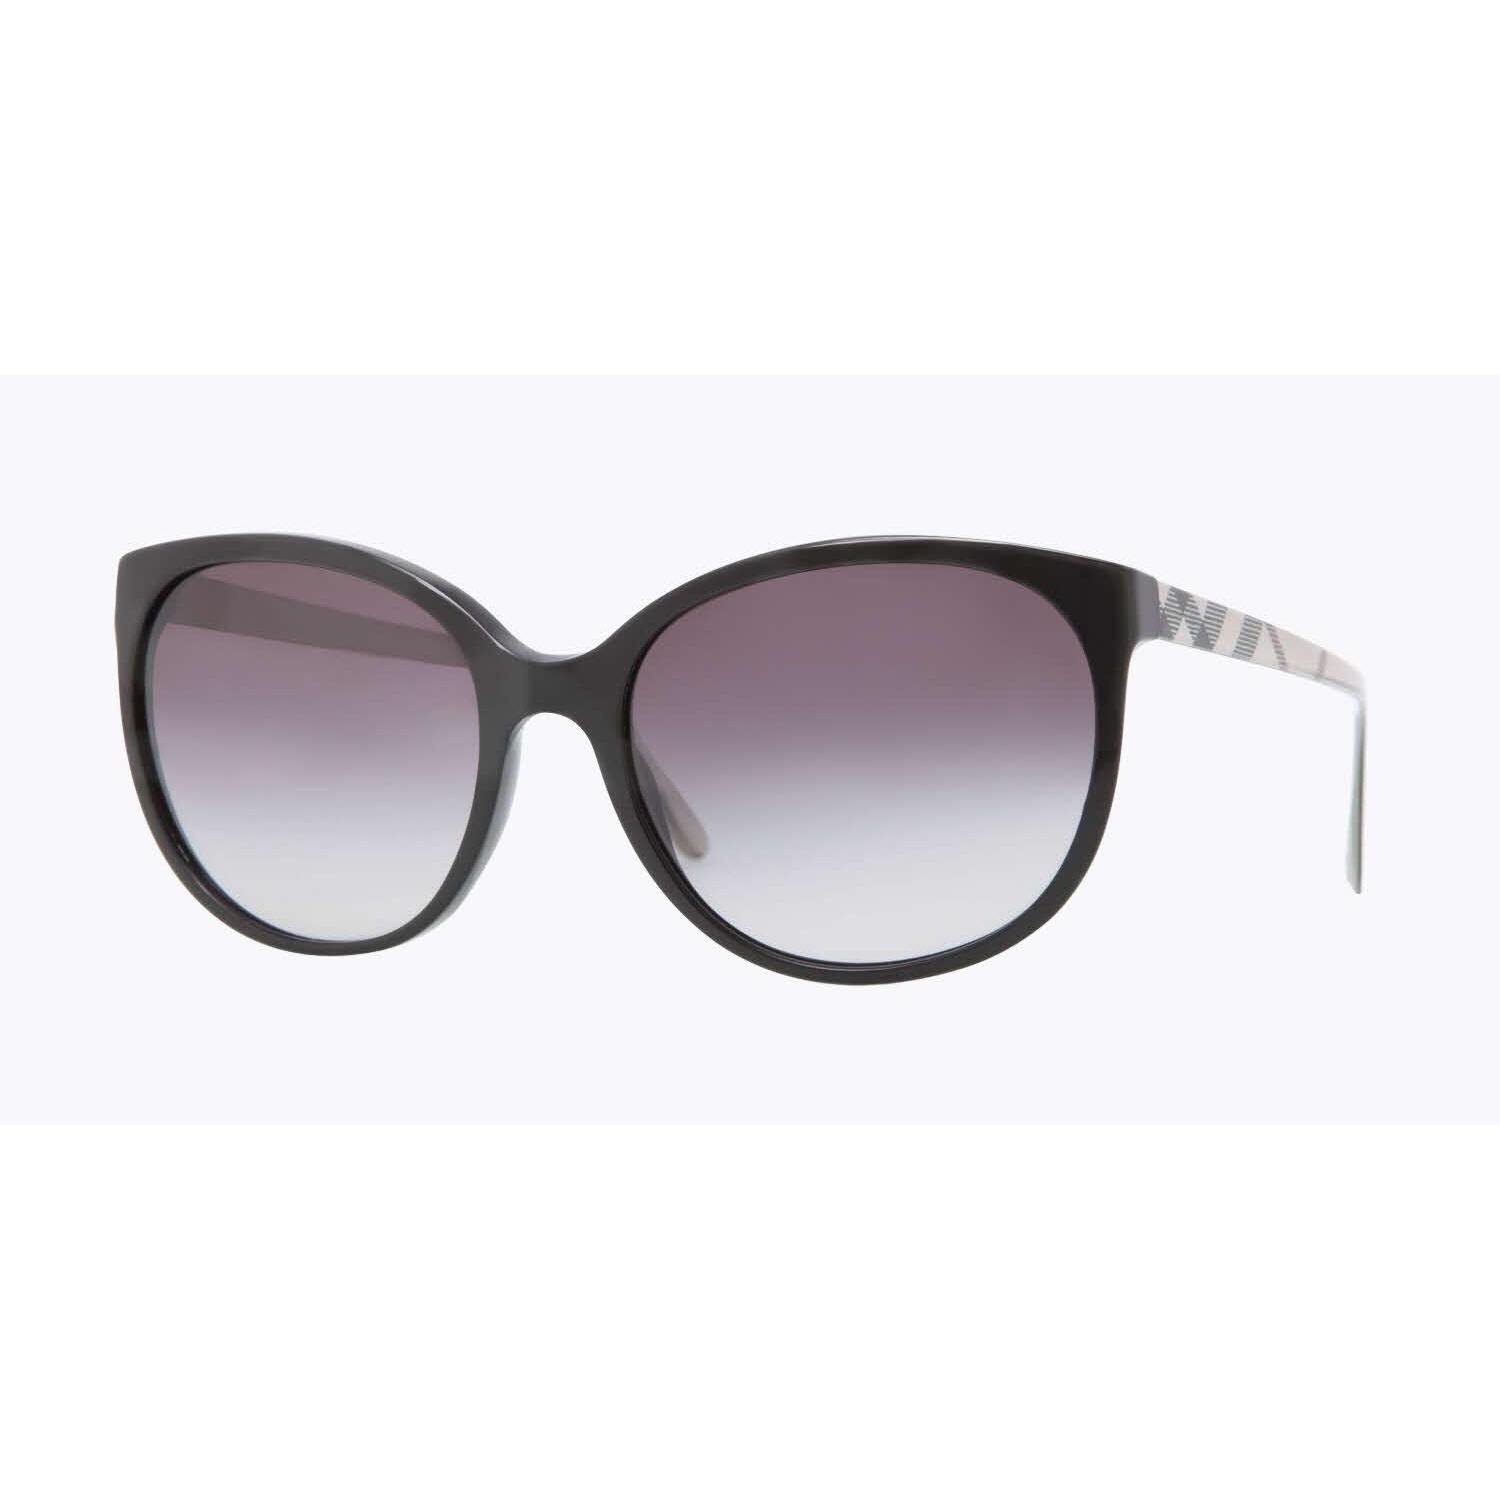 4de450951749 Shop Burberry Women BE4146 34068G Black Metal Square Sunglasses - Free  Shipping Today - Overstock - 13318774